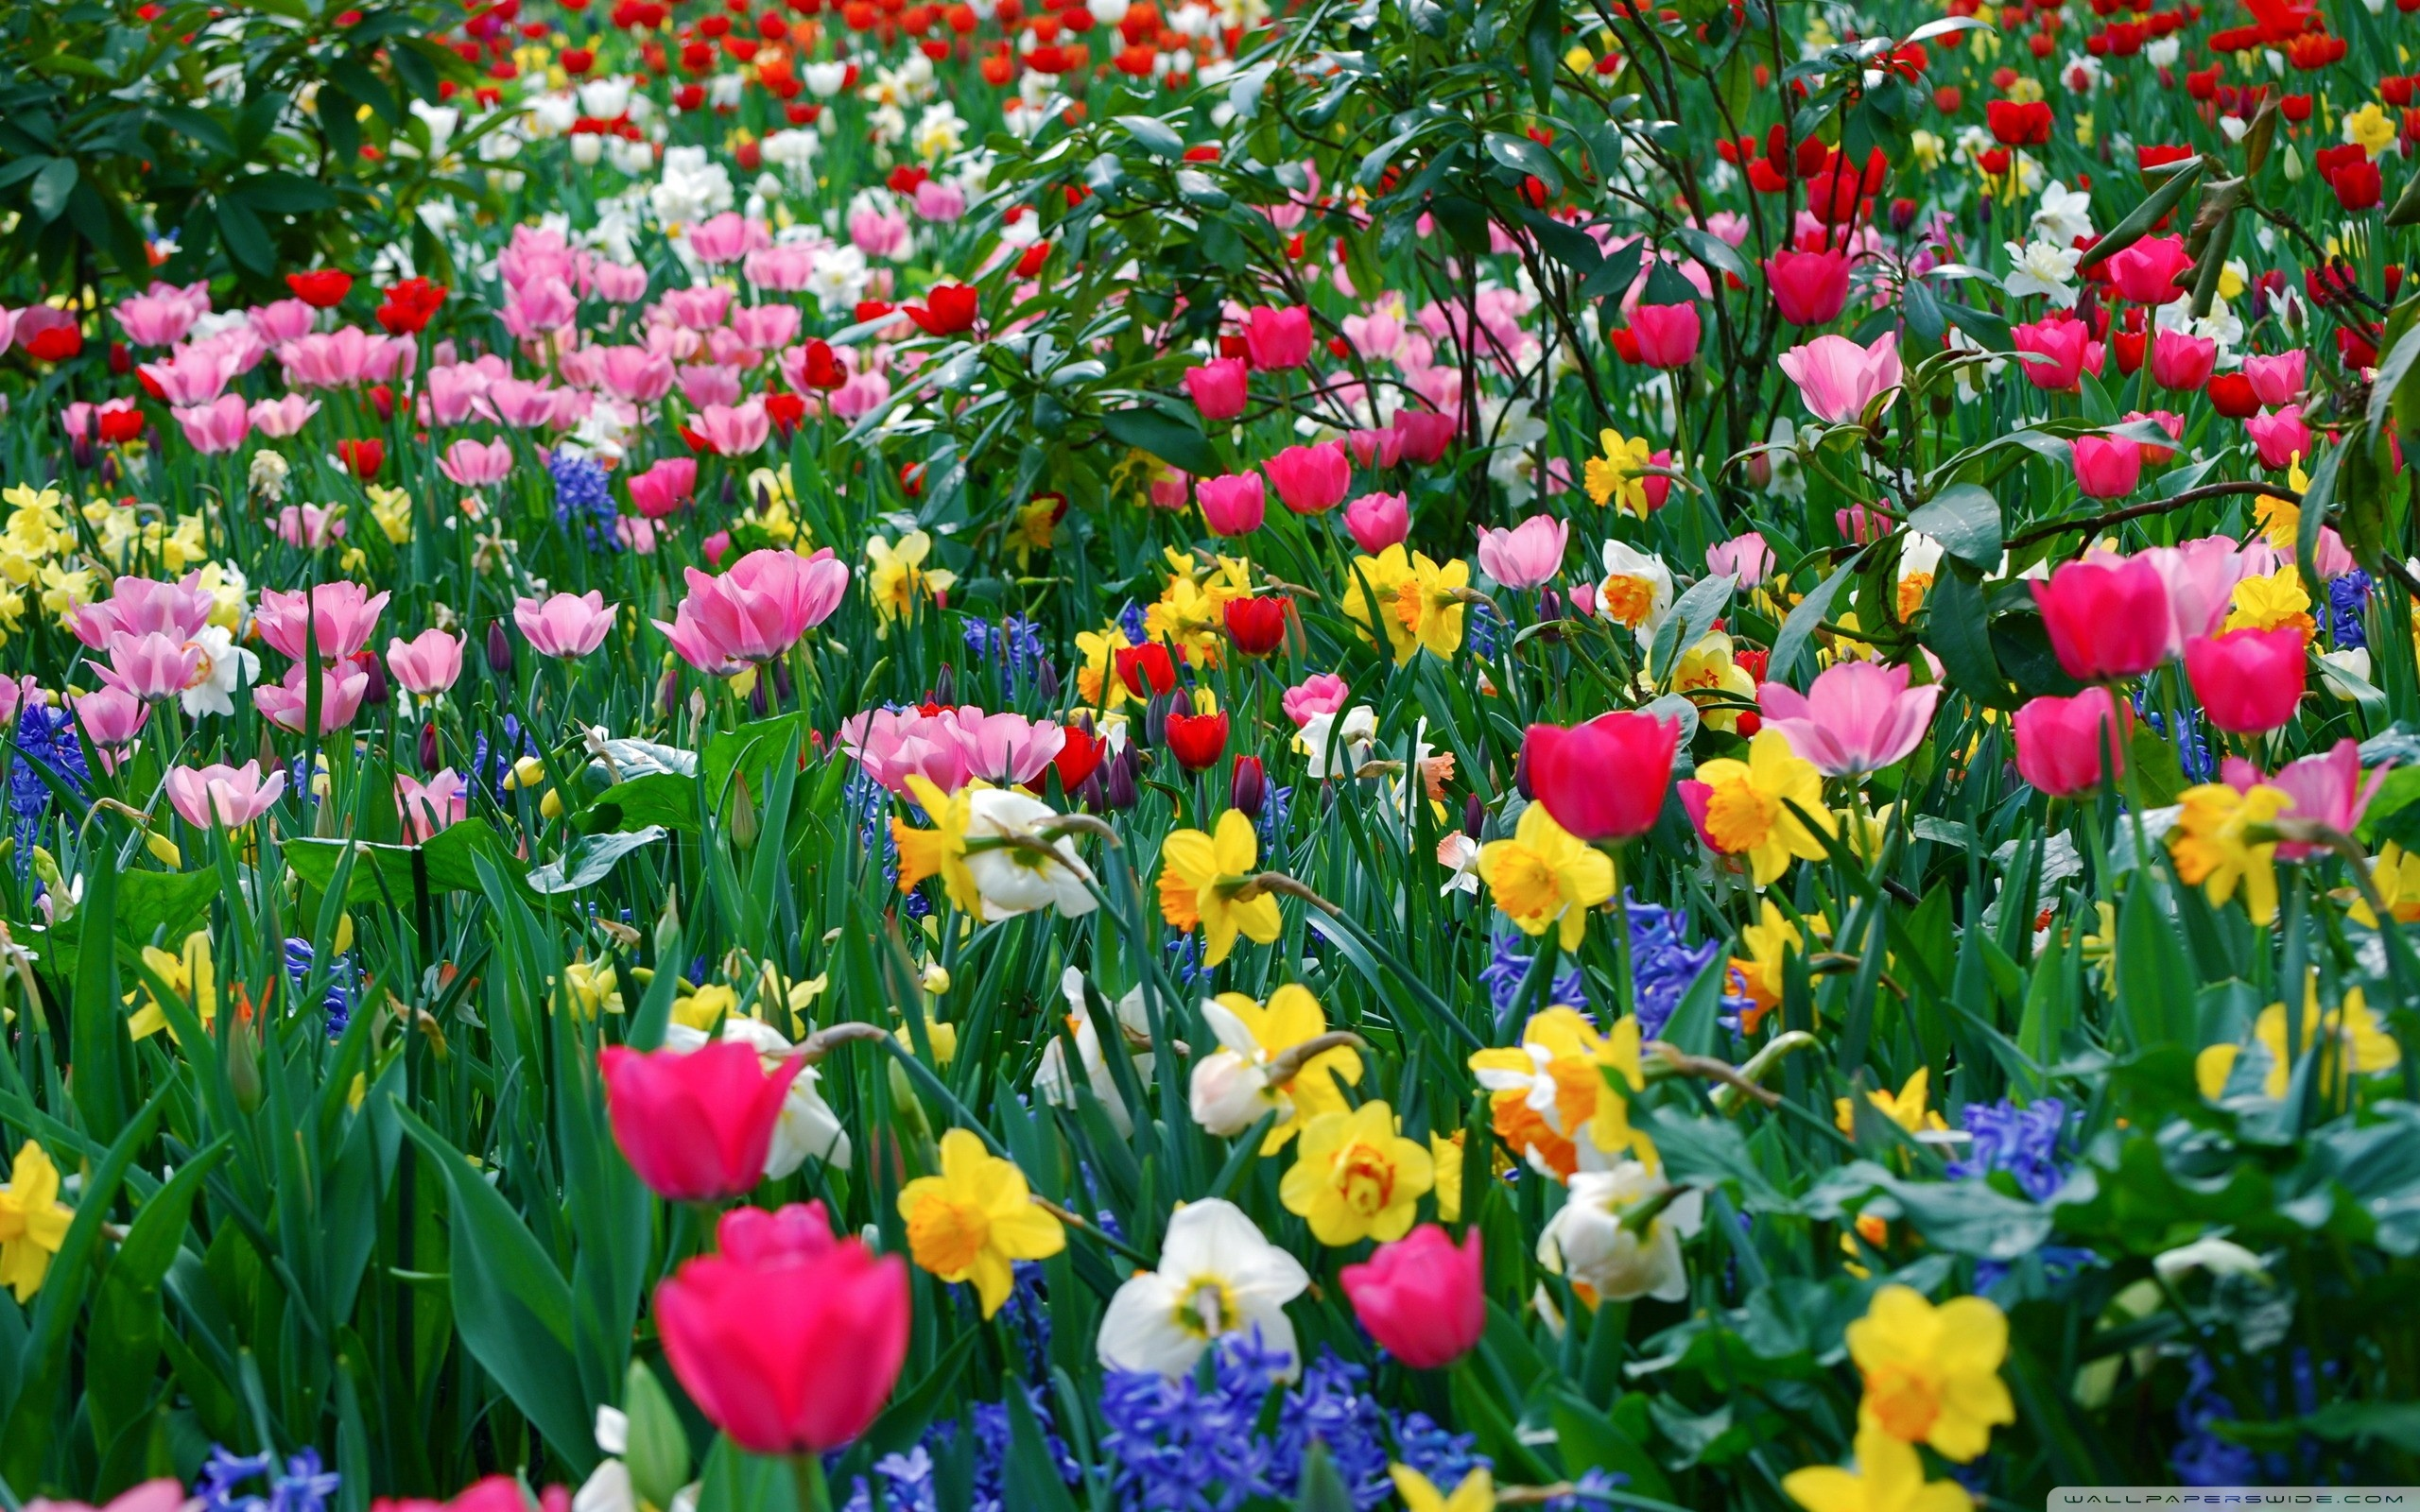 Spring Images Flowers Flowers Everywhere Hd Wallpaper And Background